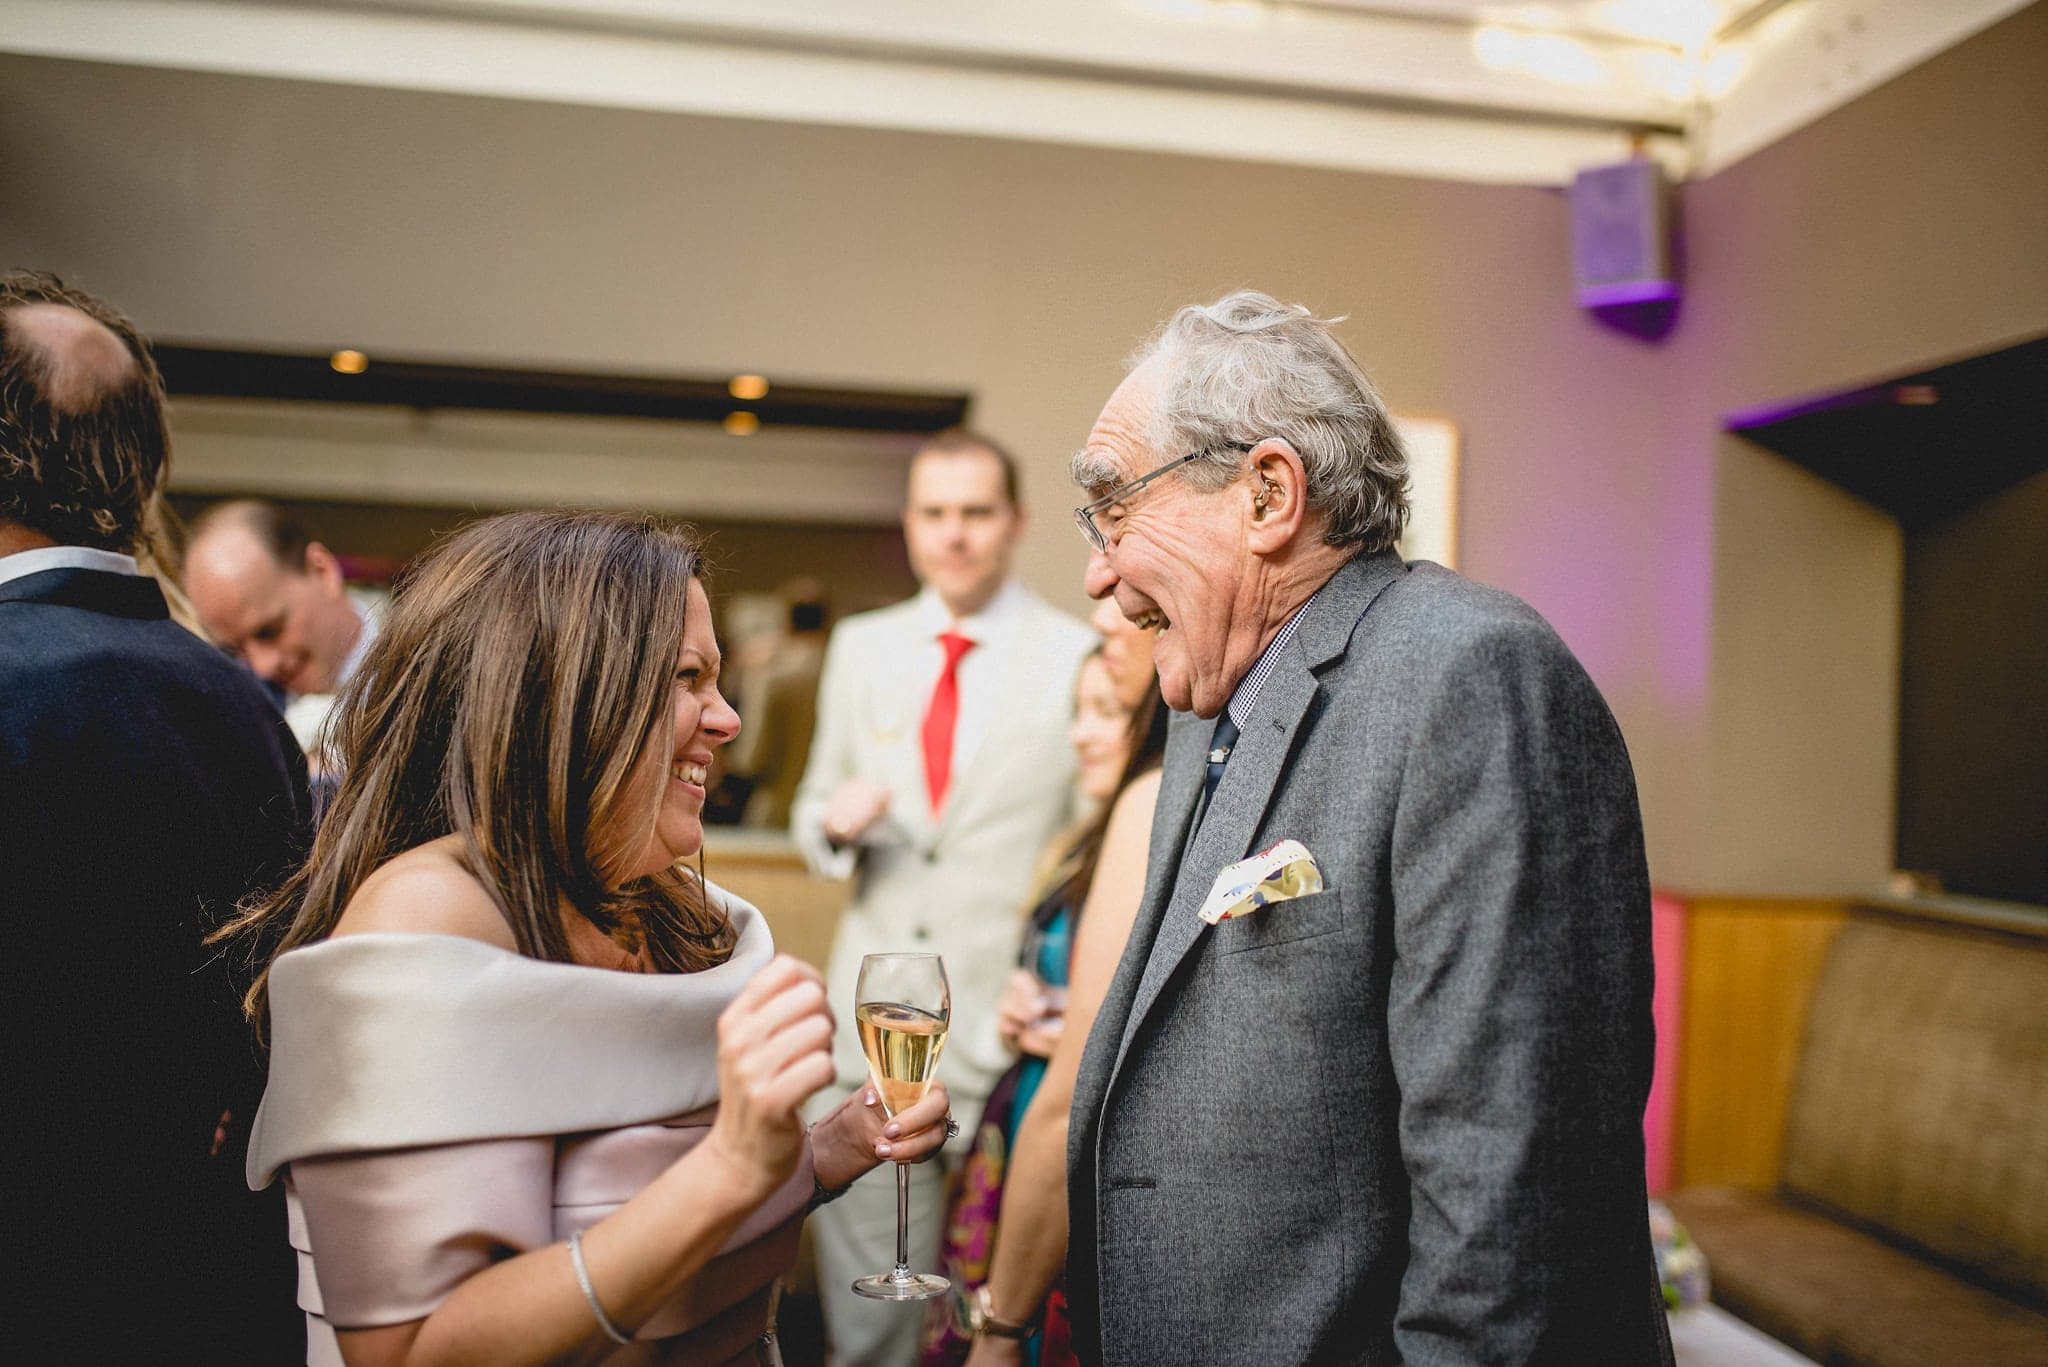 Bride laughing with elderly guest at wedding